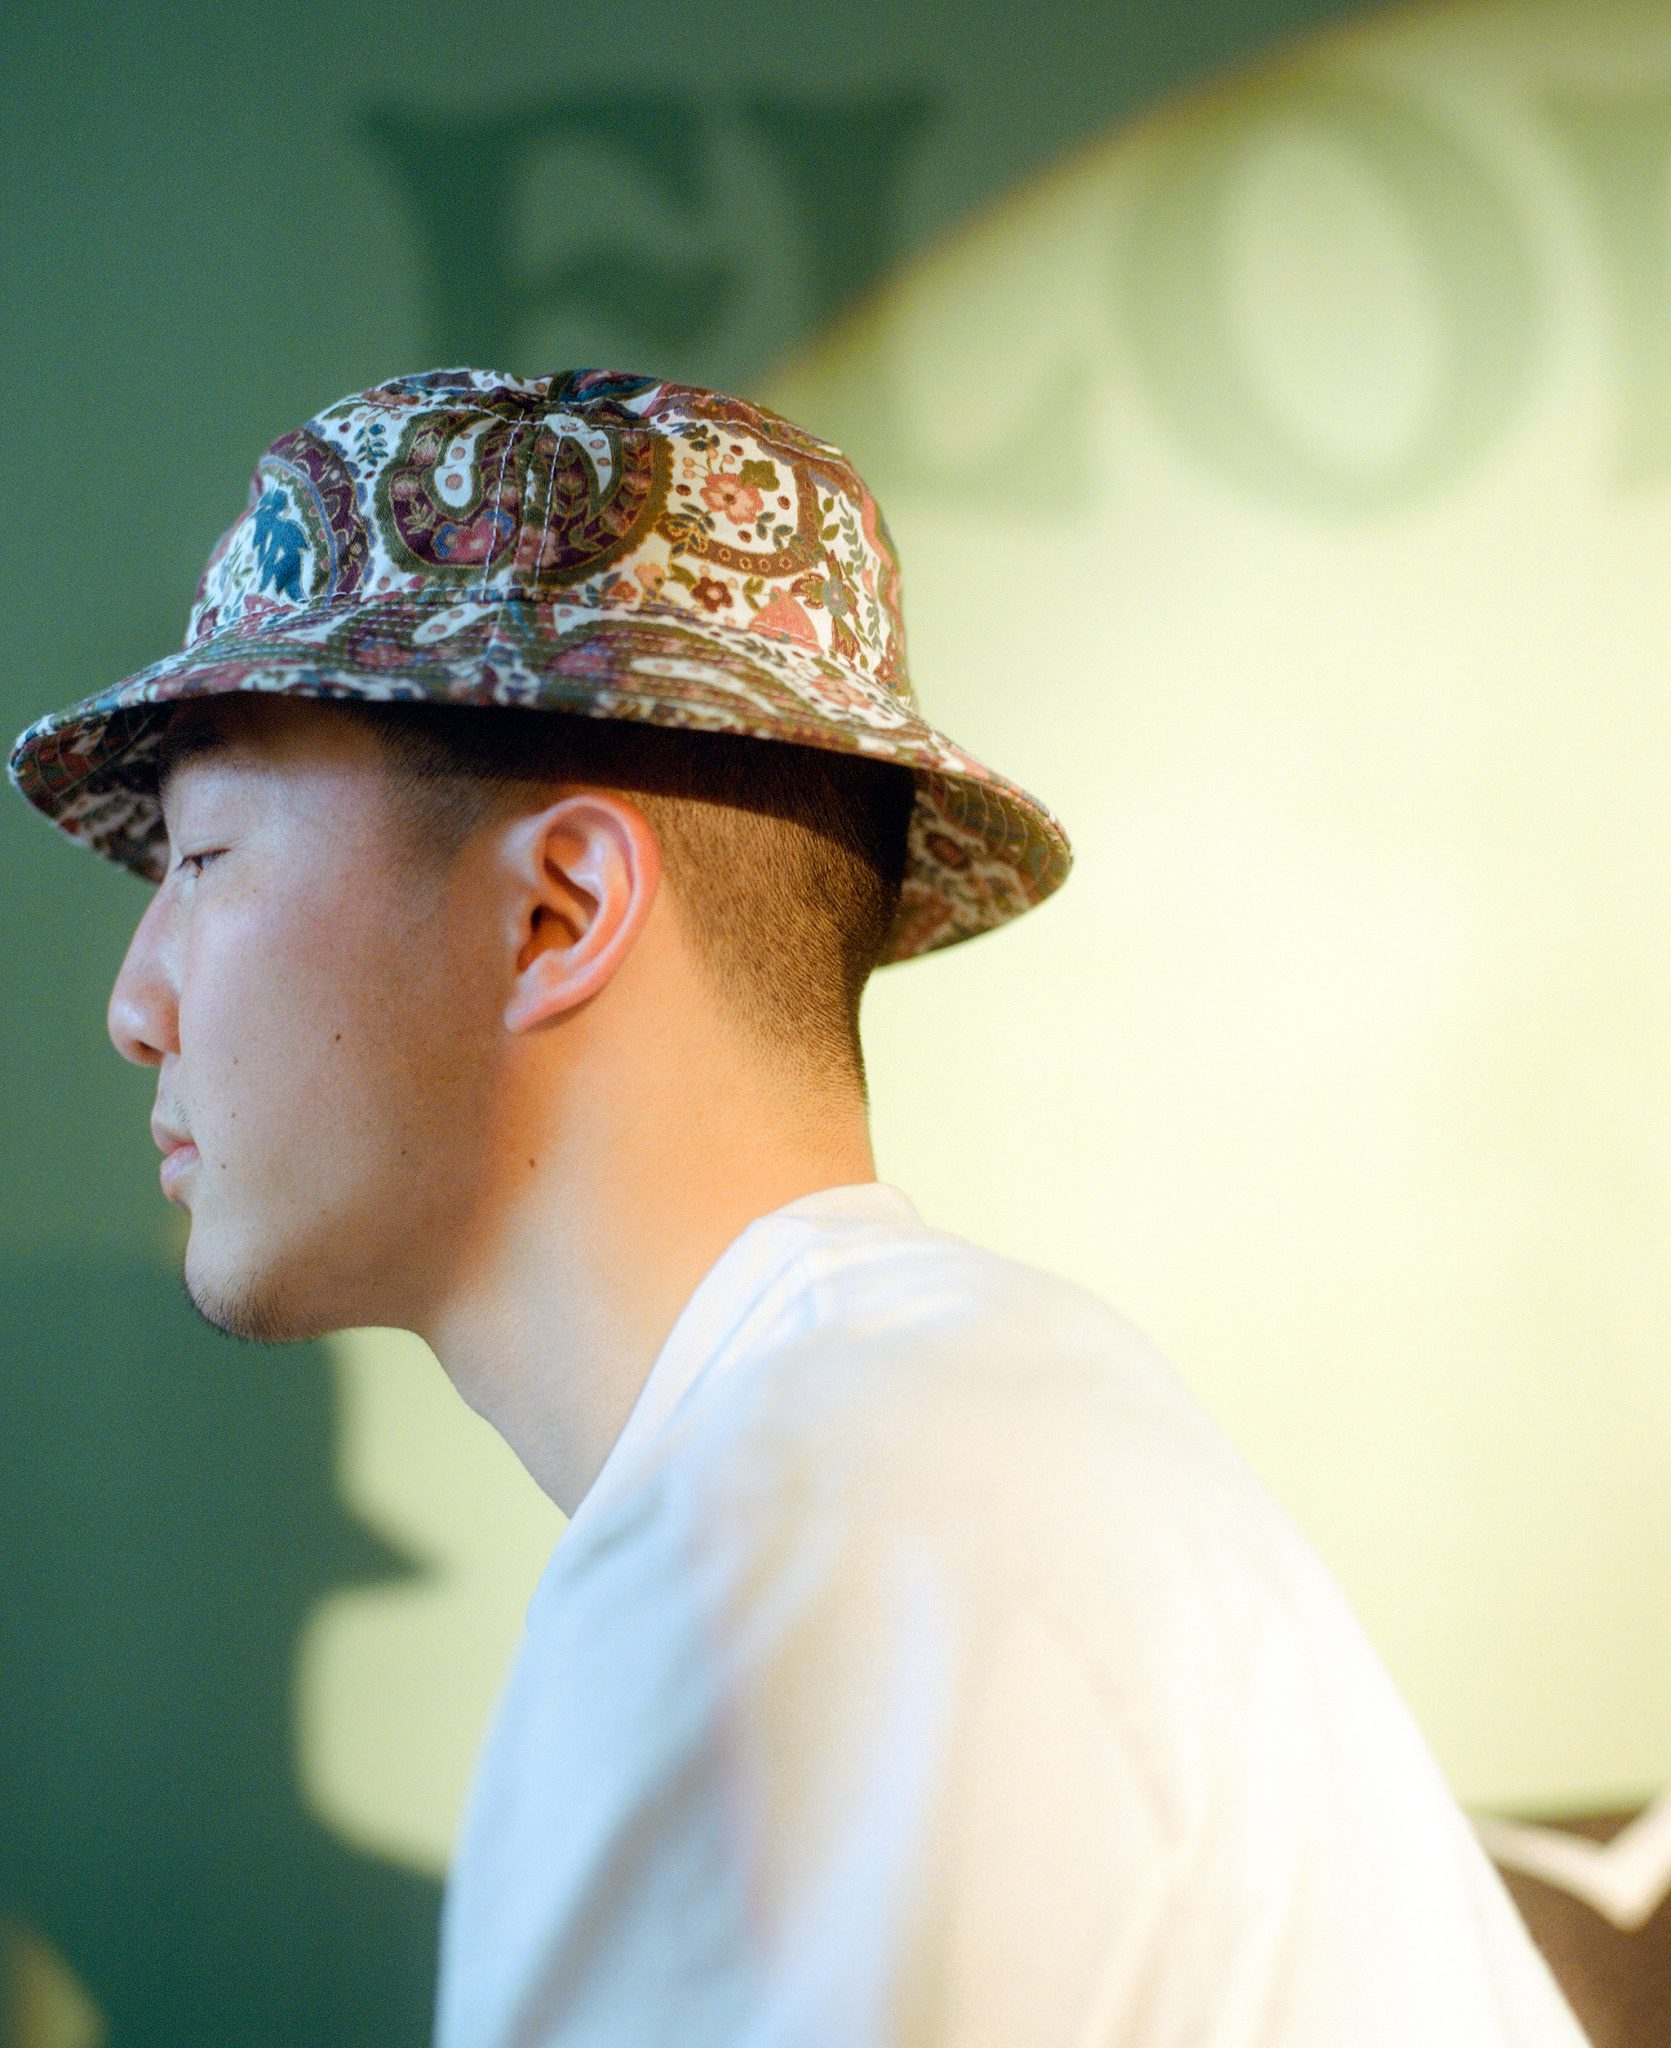 Kevin Wong wearing a bucket hat in front of a green painted wall in his lofted workspace in Oakland, California